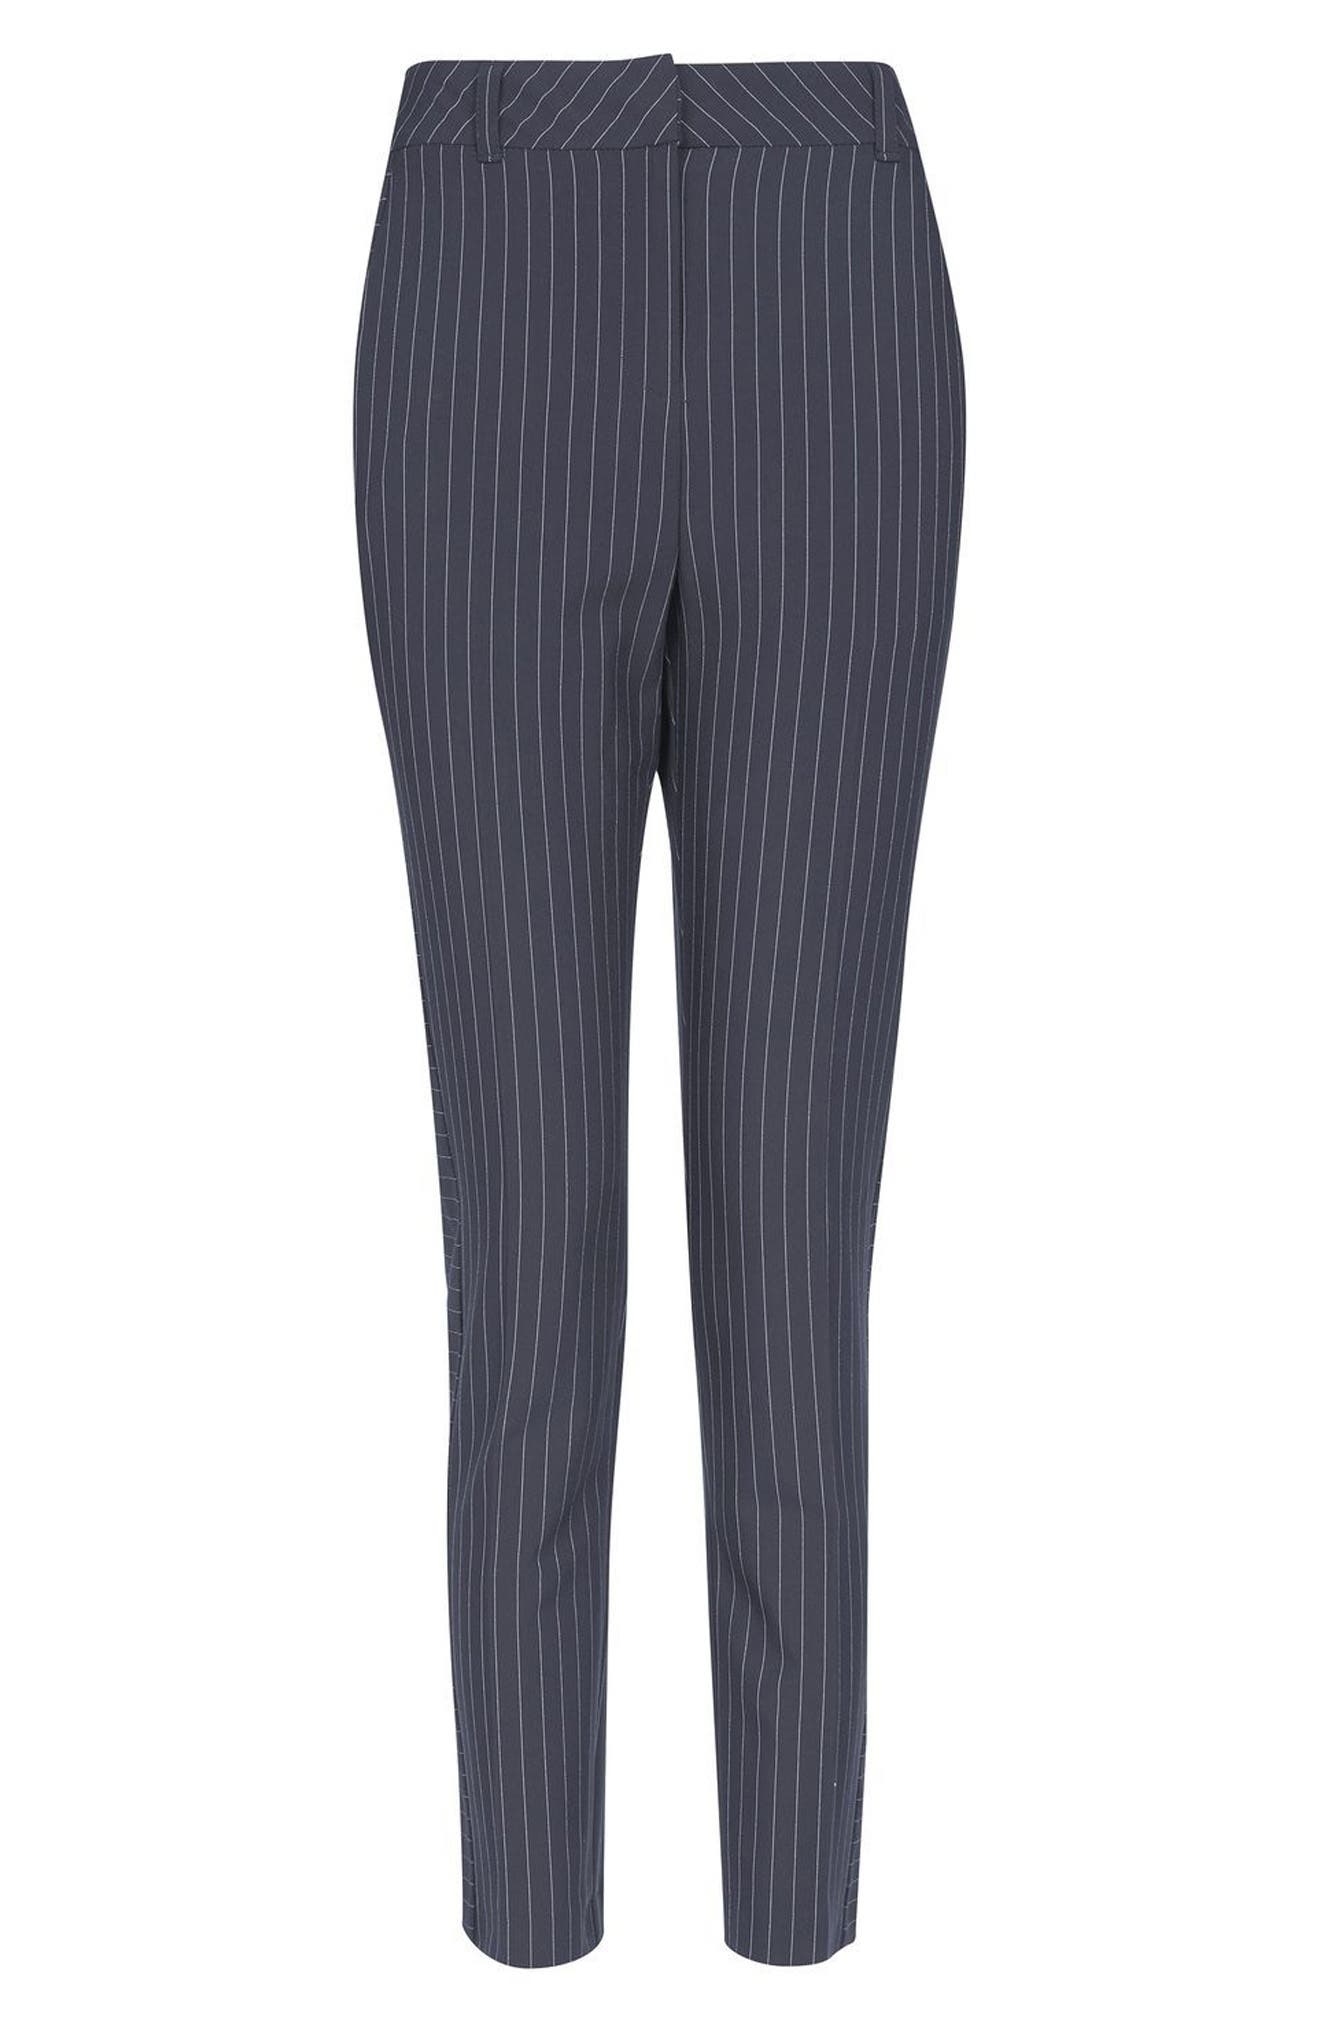 Cut About Pinstripe Cigarette Trousers,                             Alternate thumbnail 4, color,                             Navy Blue